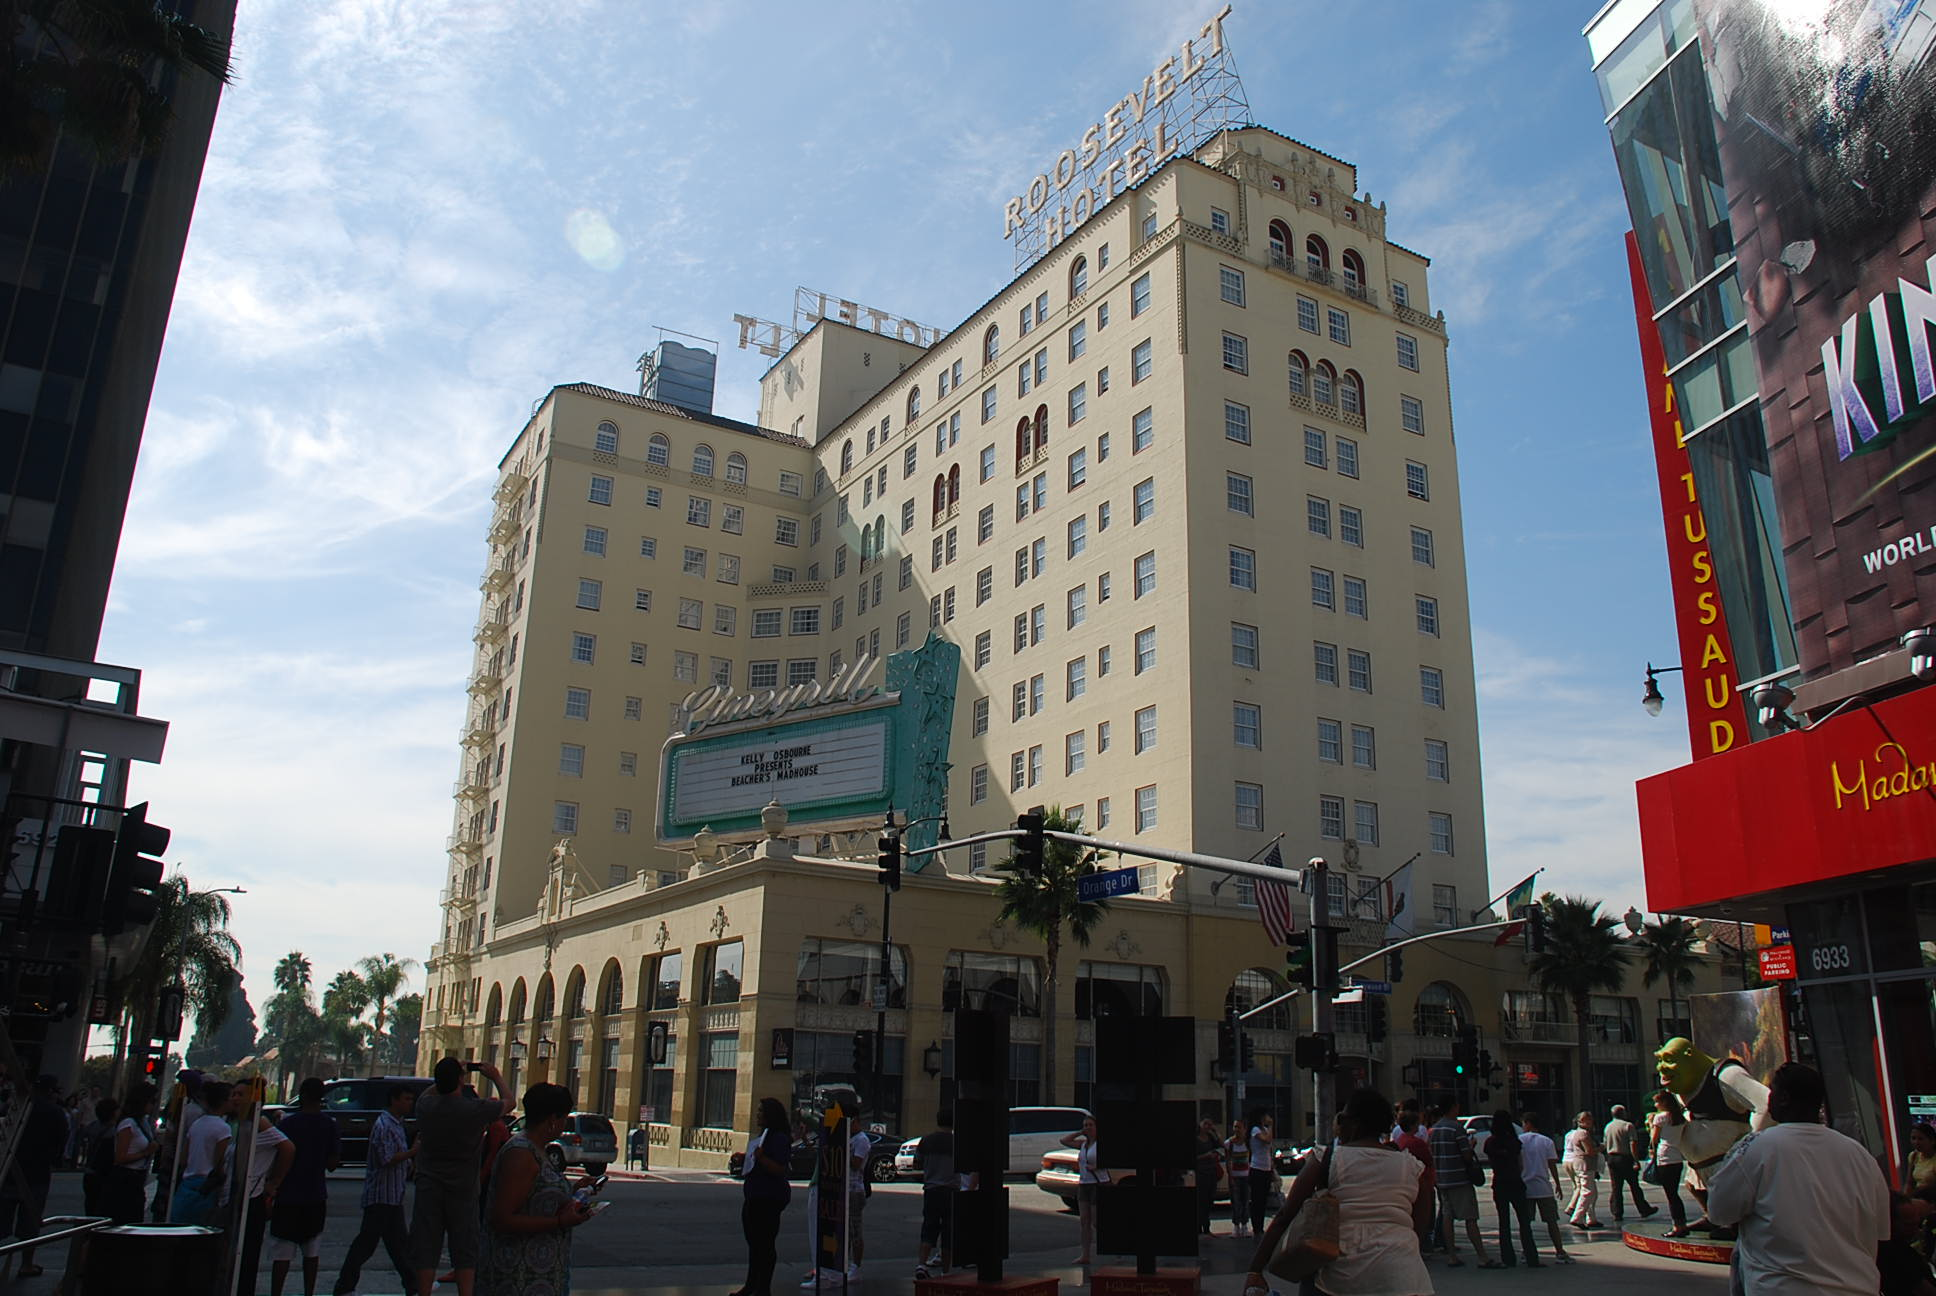 The Roosevelt Hotel is a historic Spanish-style hotel located at 7000 Hollywood Boulevard in Hollywood, Los Angeles, California. Named after Theodore Roosevelt and financed by a group including Douglas Fairbanks, Mary Pickford and Louis B. Mayer, it first